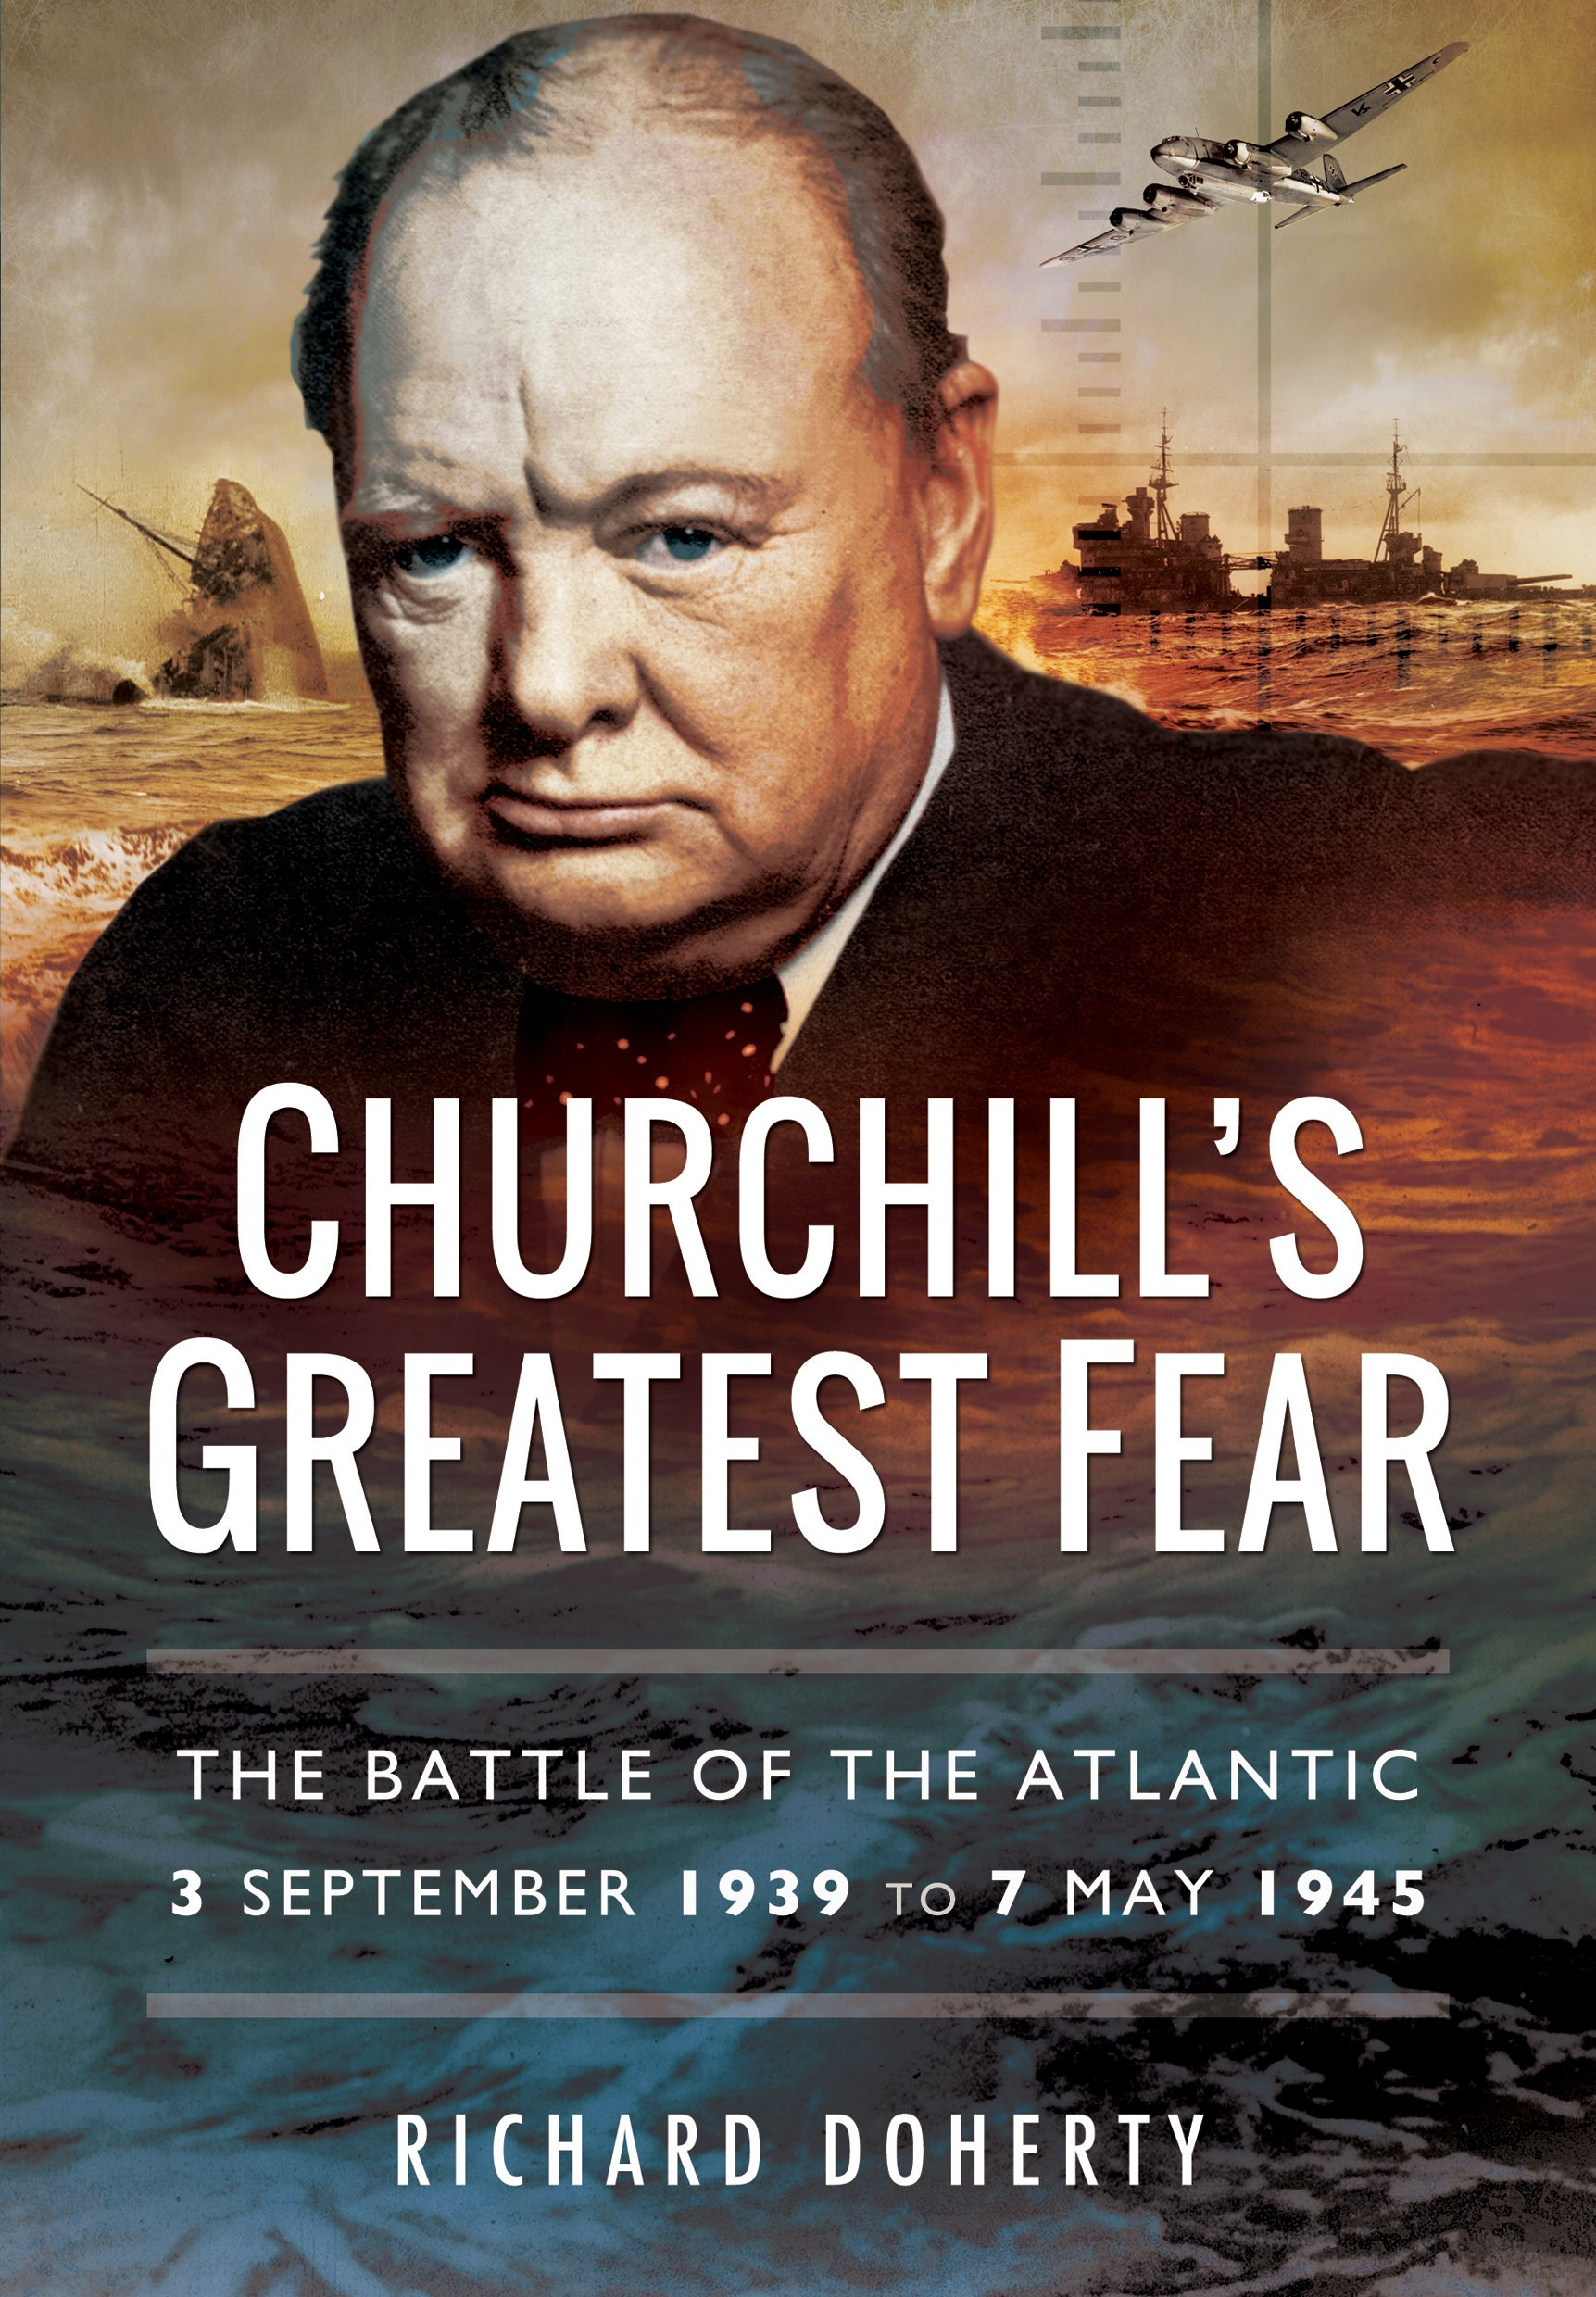 Read Online Churchill's Greatest Fear: The Battle of the Atlantic - 3 September 1939 to 7 May 1945 pdf epub